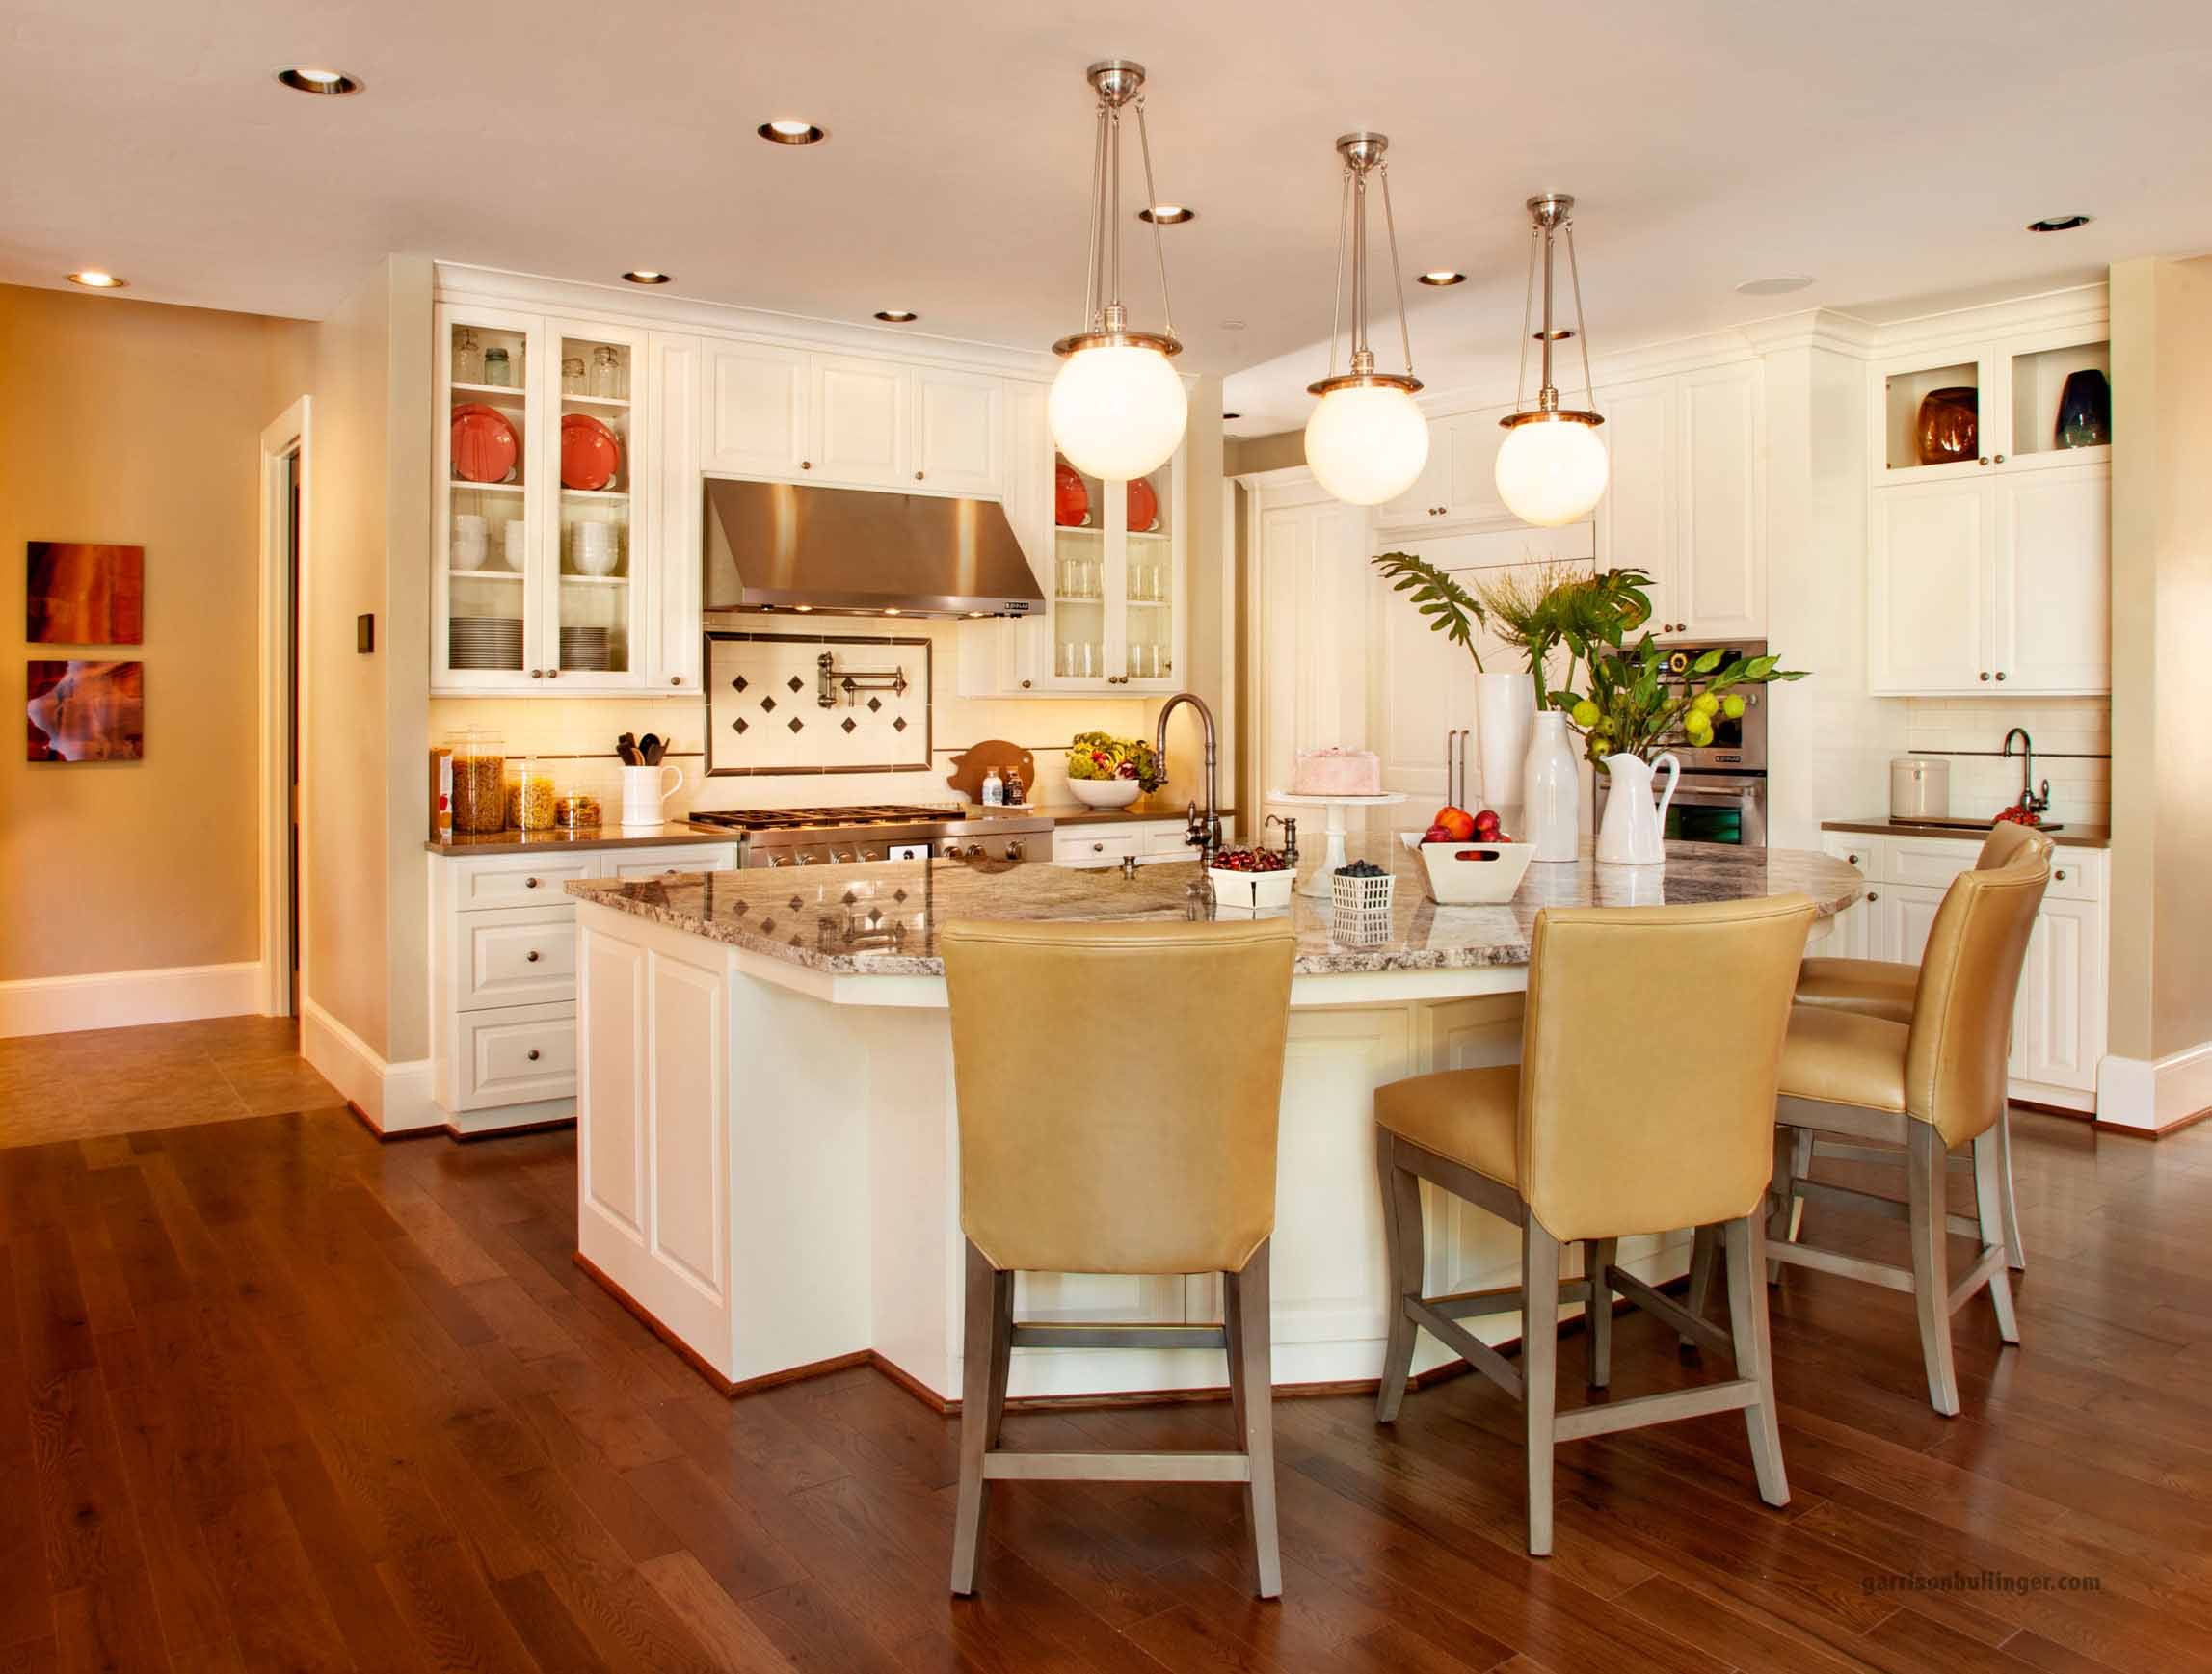 Bright Kitchen Design Ideas, white kitchen cabinets, the perfect balance in a kitchen